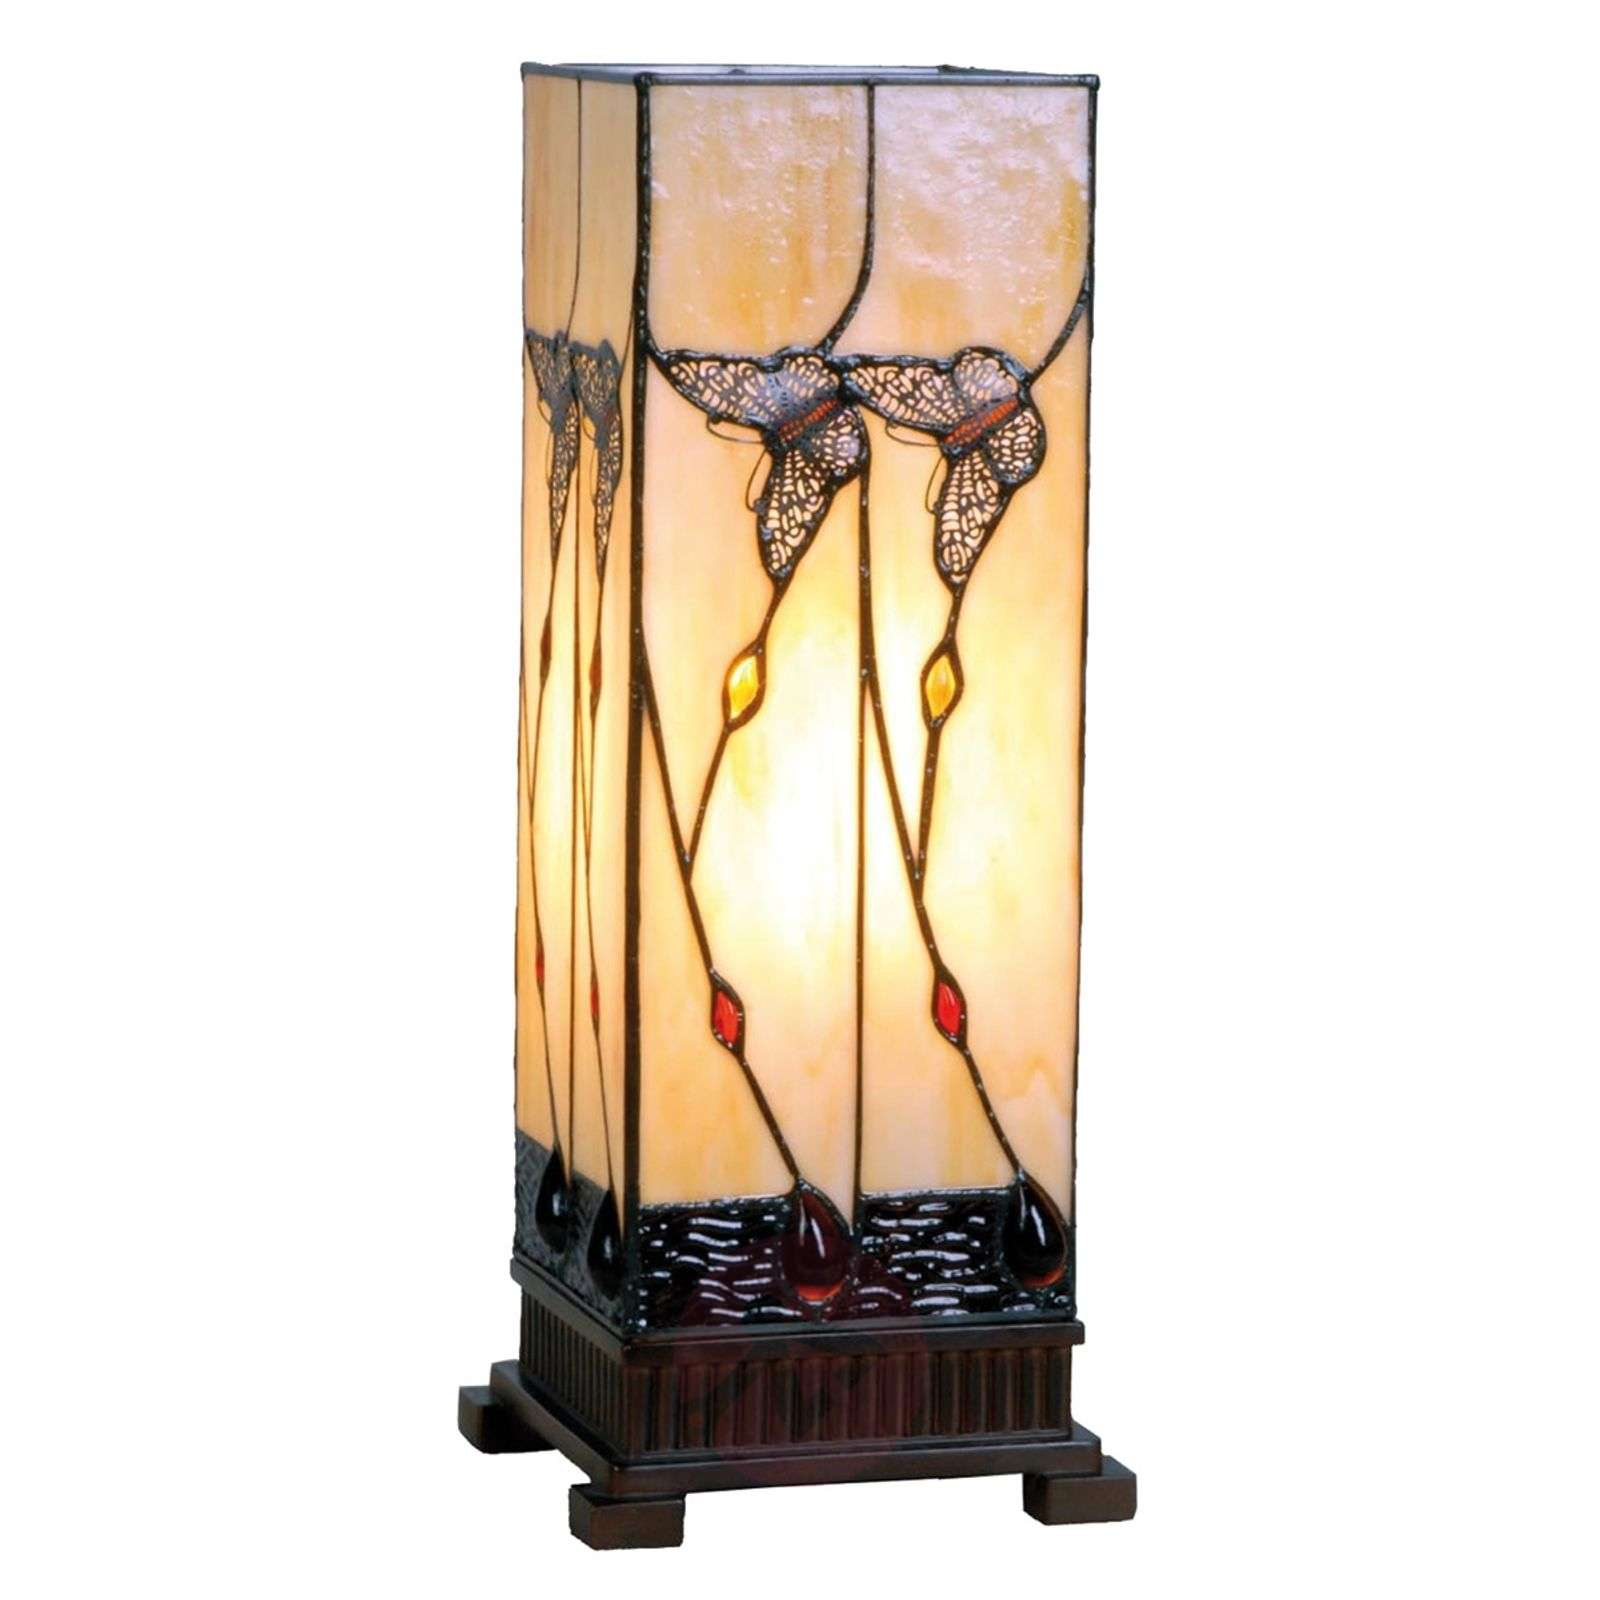 Amber-coloured table lamp Amberly 45 cm-6064087-01